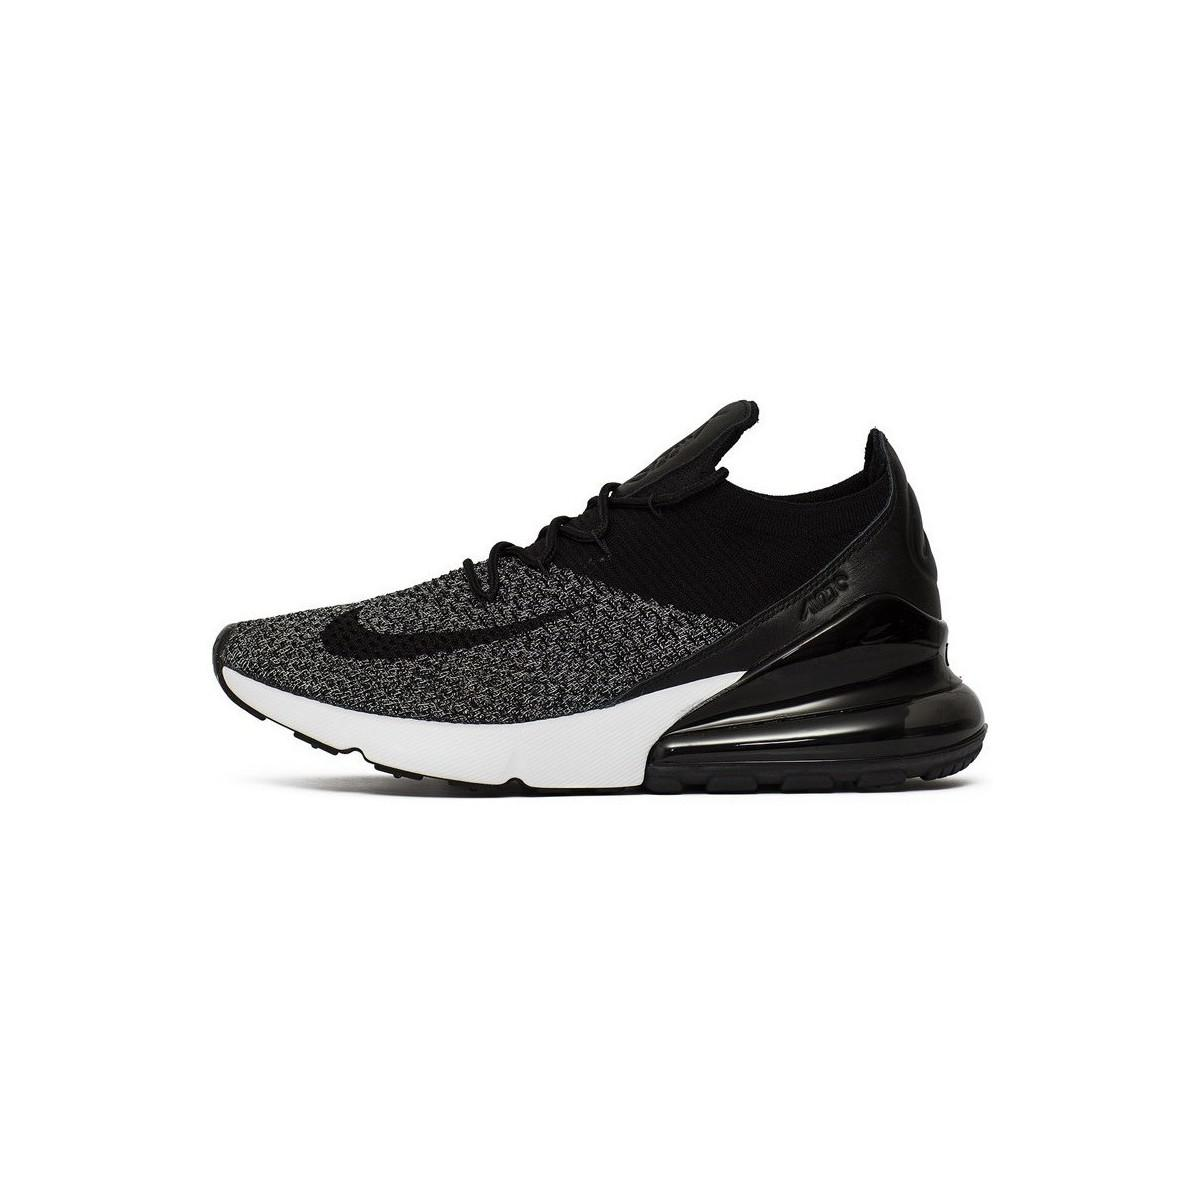 11556ab067af Nike Air Max 270 Flyknit Men s Shoes (trainers) In Black in Black ...